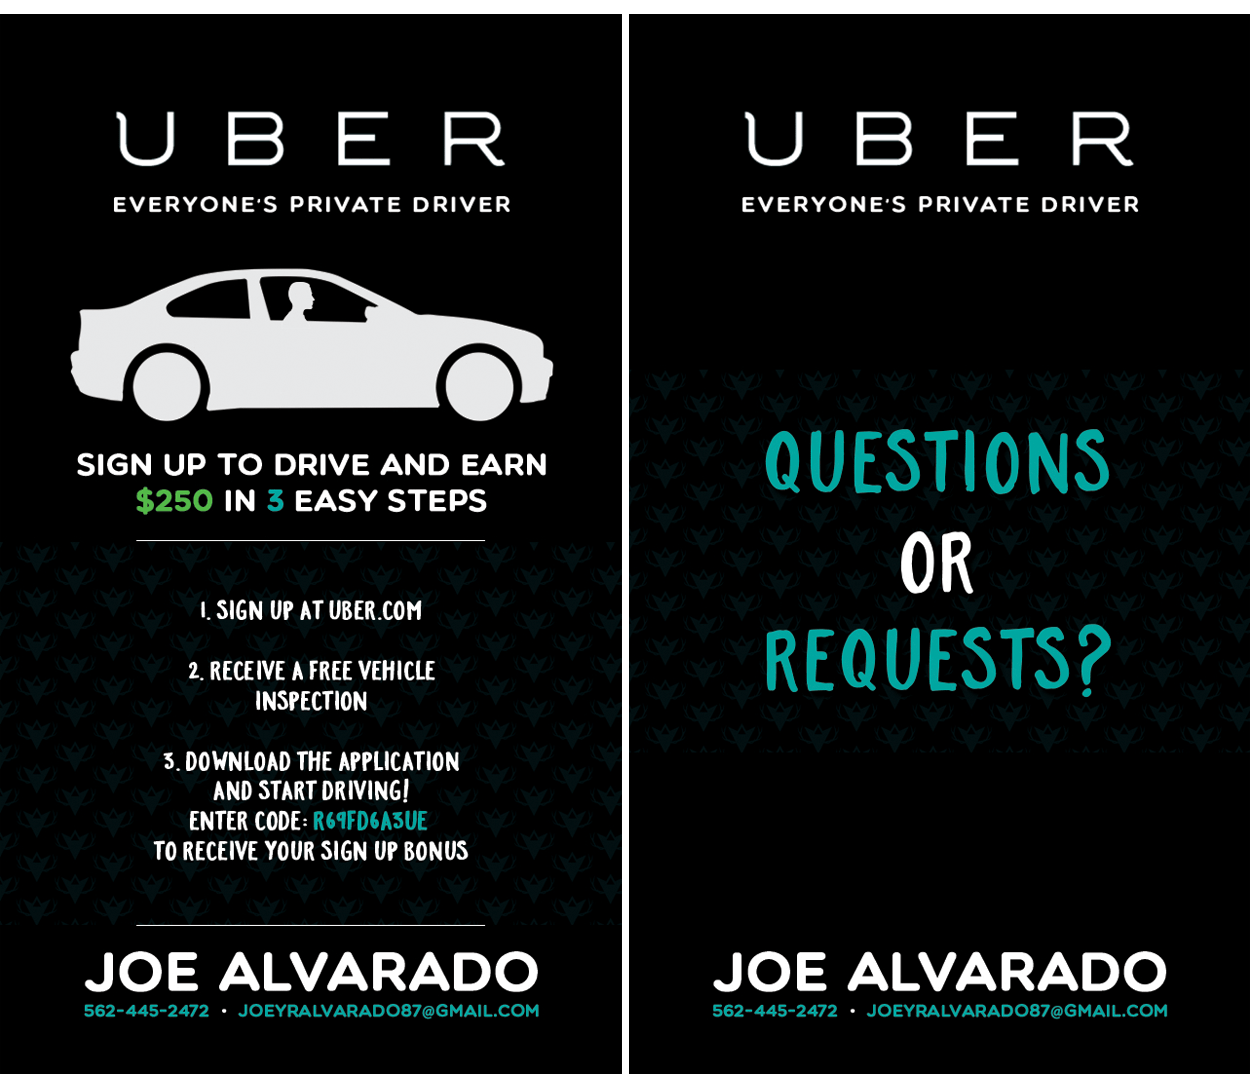 Joe alvarado uber business card design branched off joe alvarado uber business card design reheart Choice Image